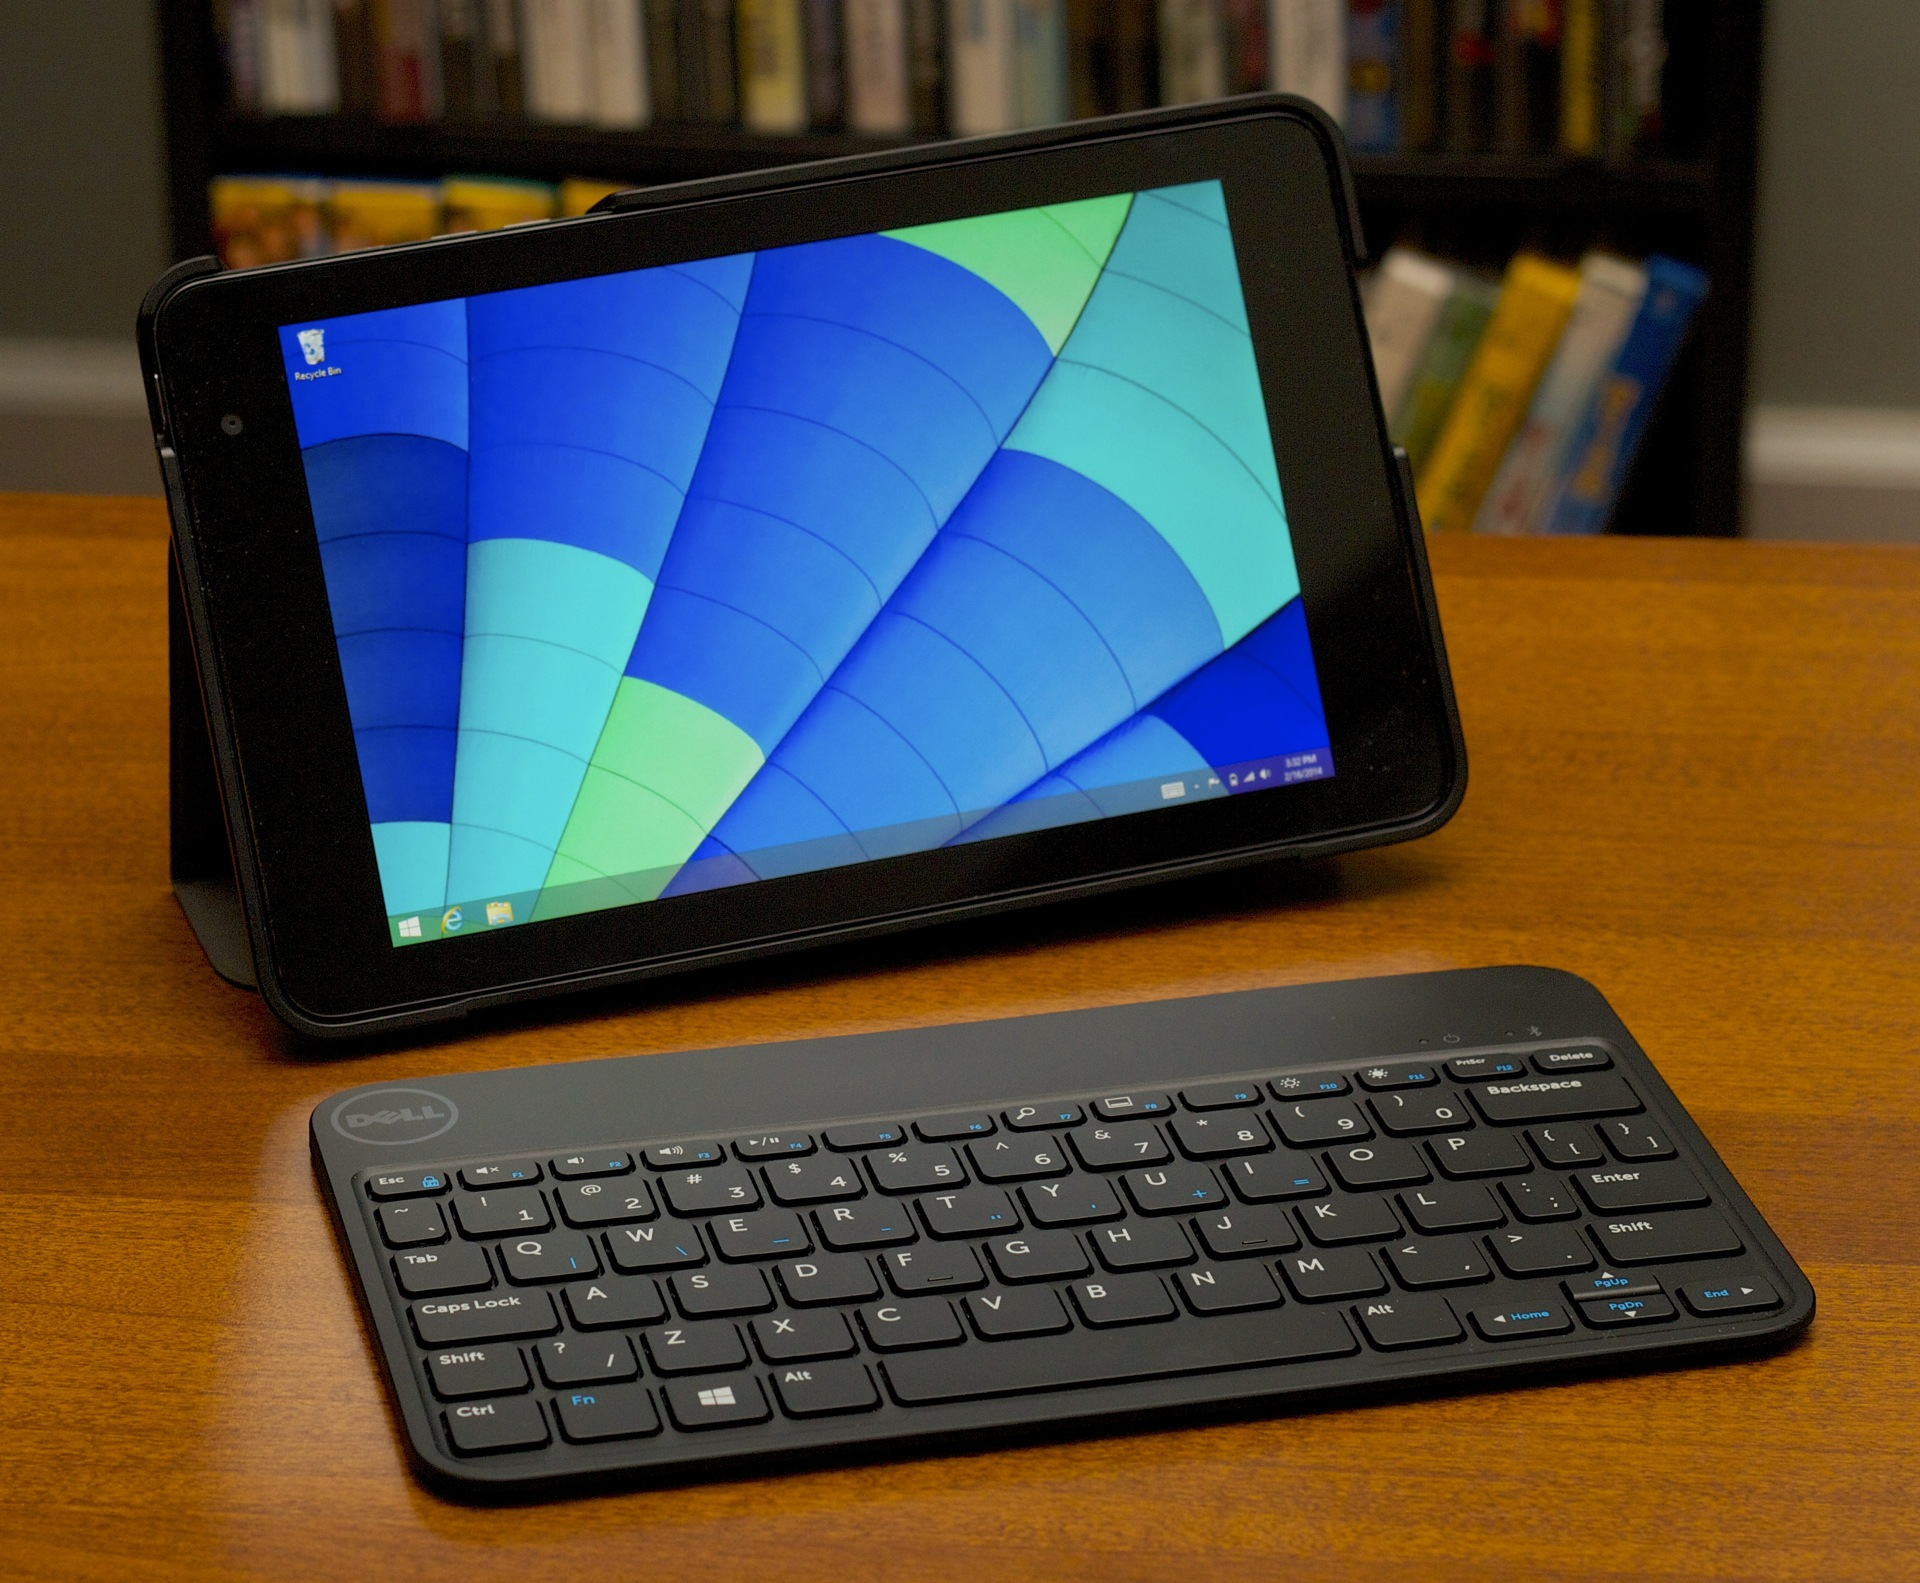 The Venue 8 in its case with its Bluetooth keyboard accessory.